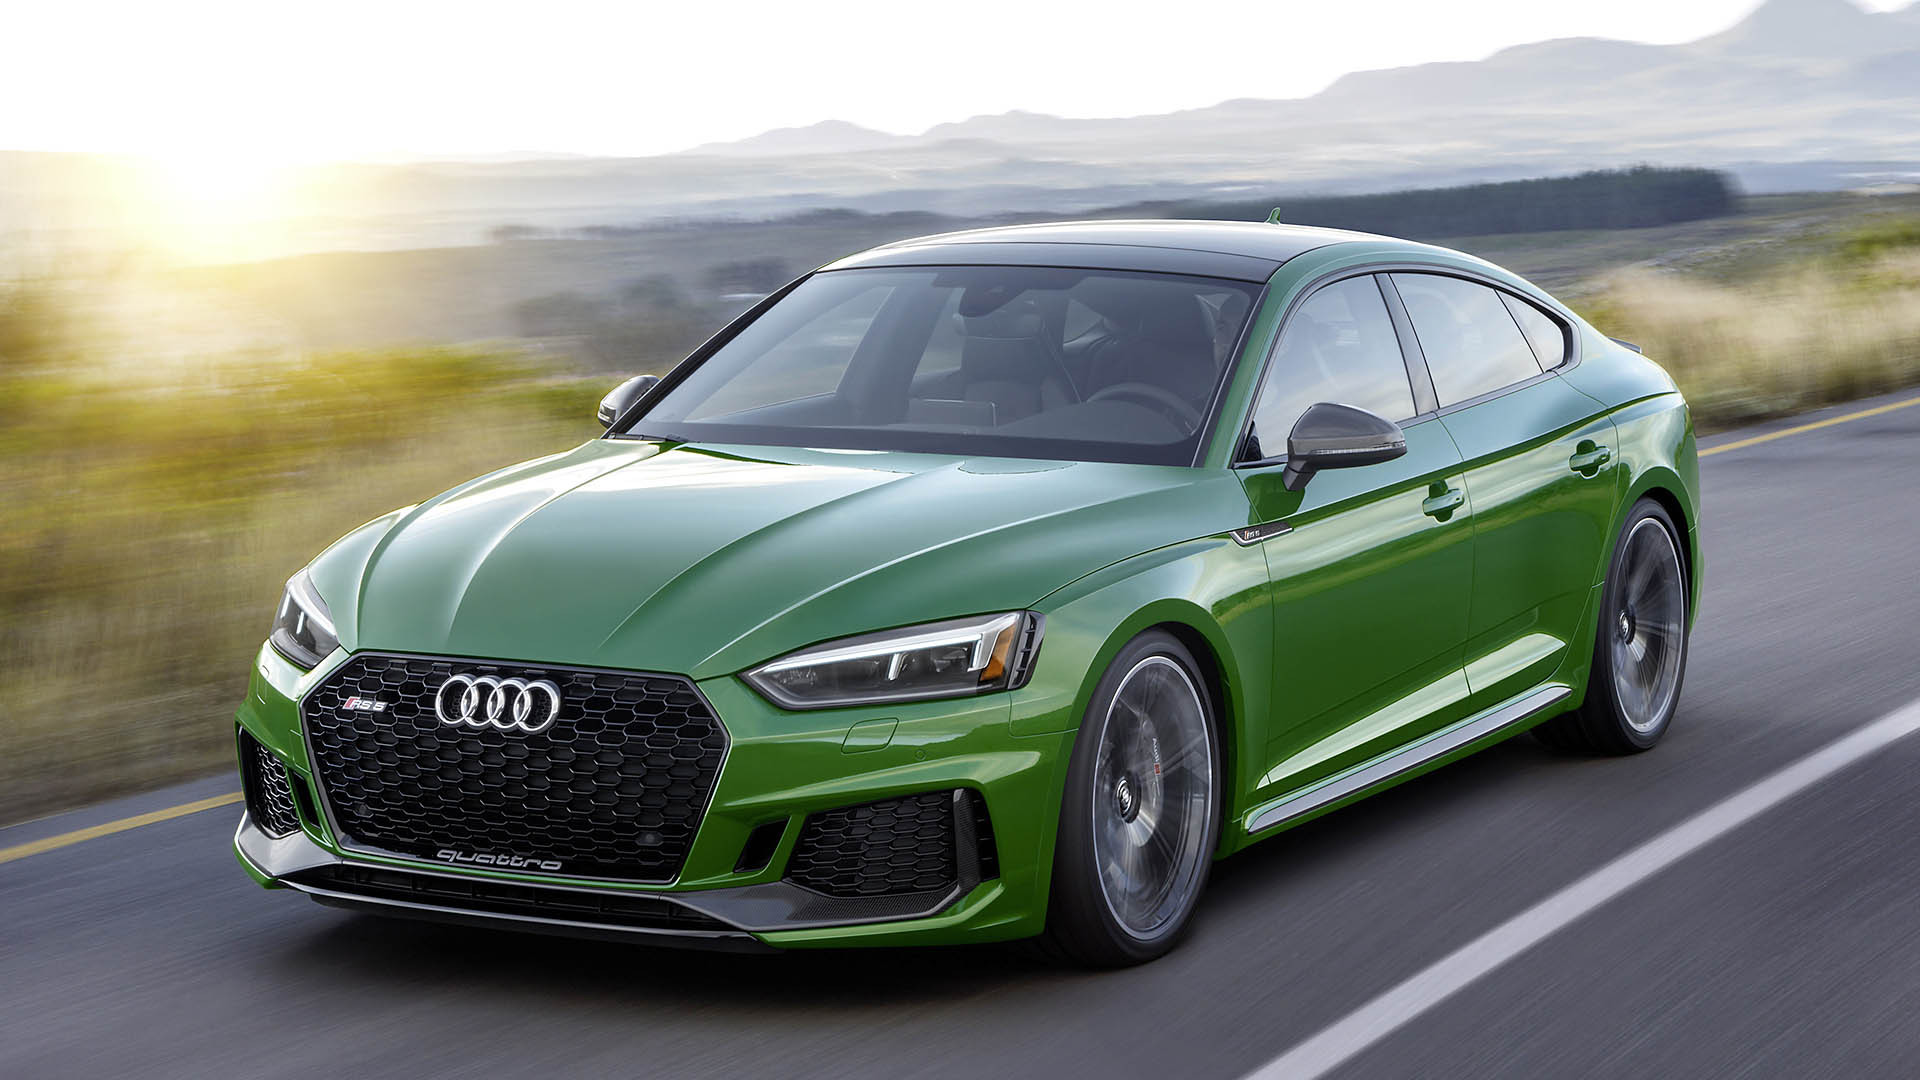 Audi RS 5 - Power Five-Door With 450 hp